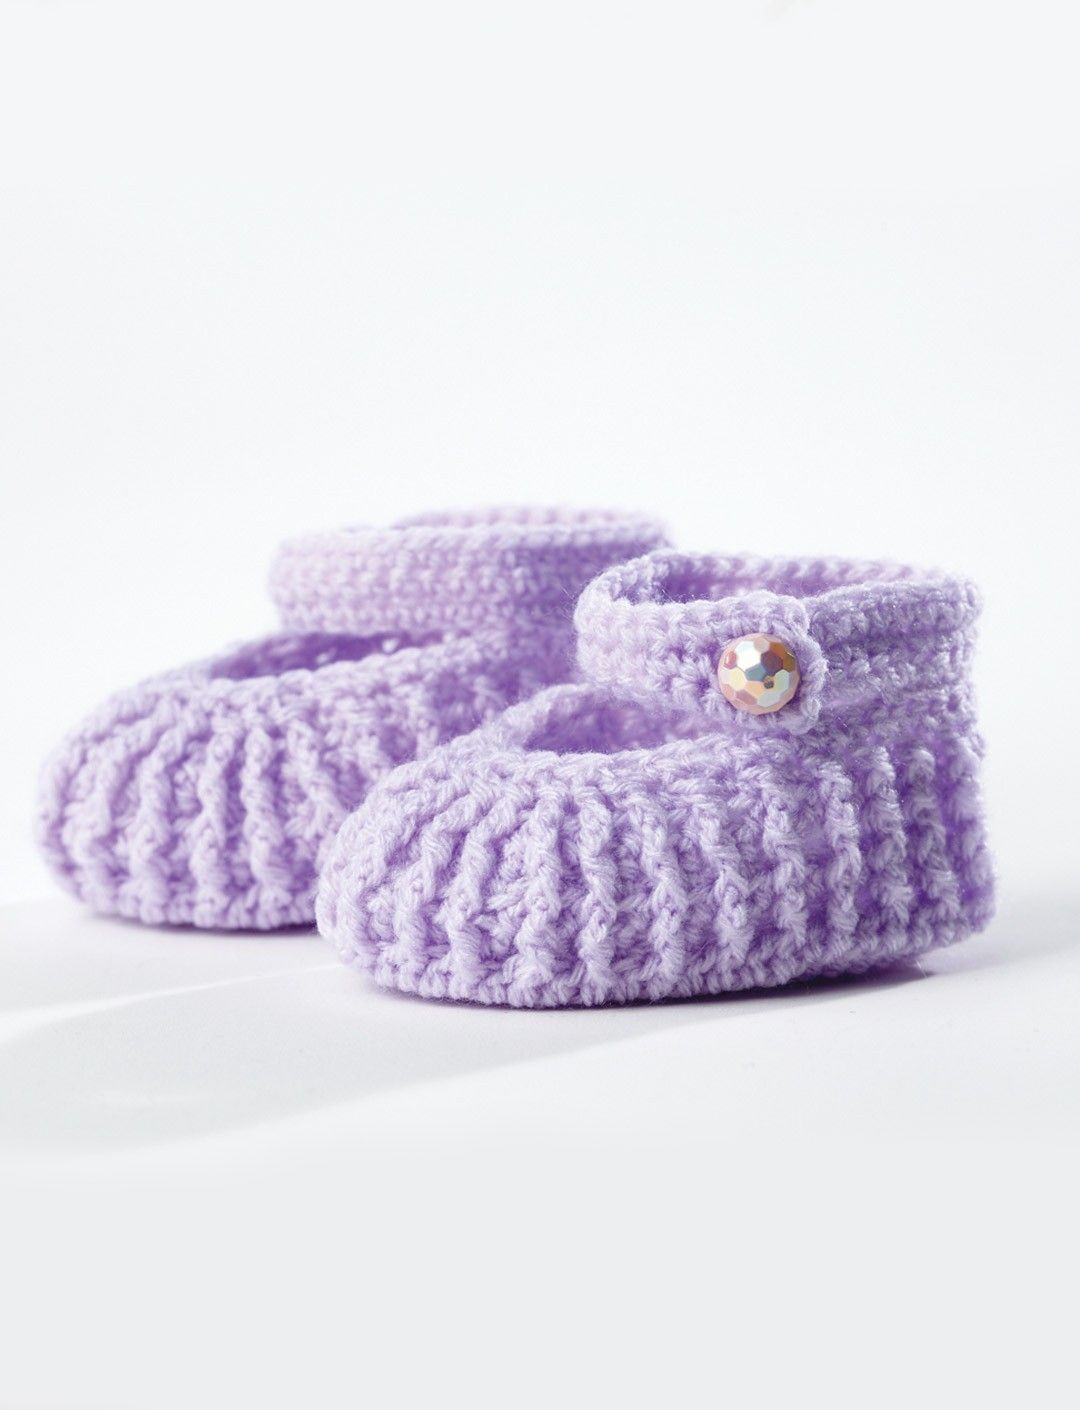 Crochet Baby Mary Jane Booties Free Patterns | Babyschühchen ...